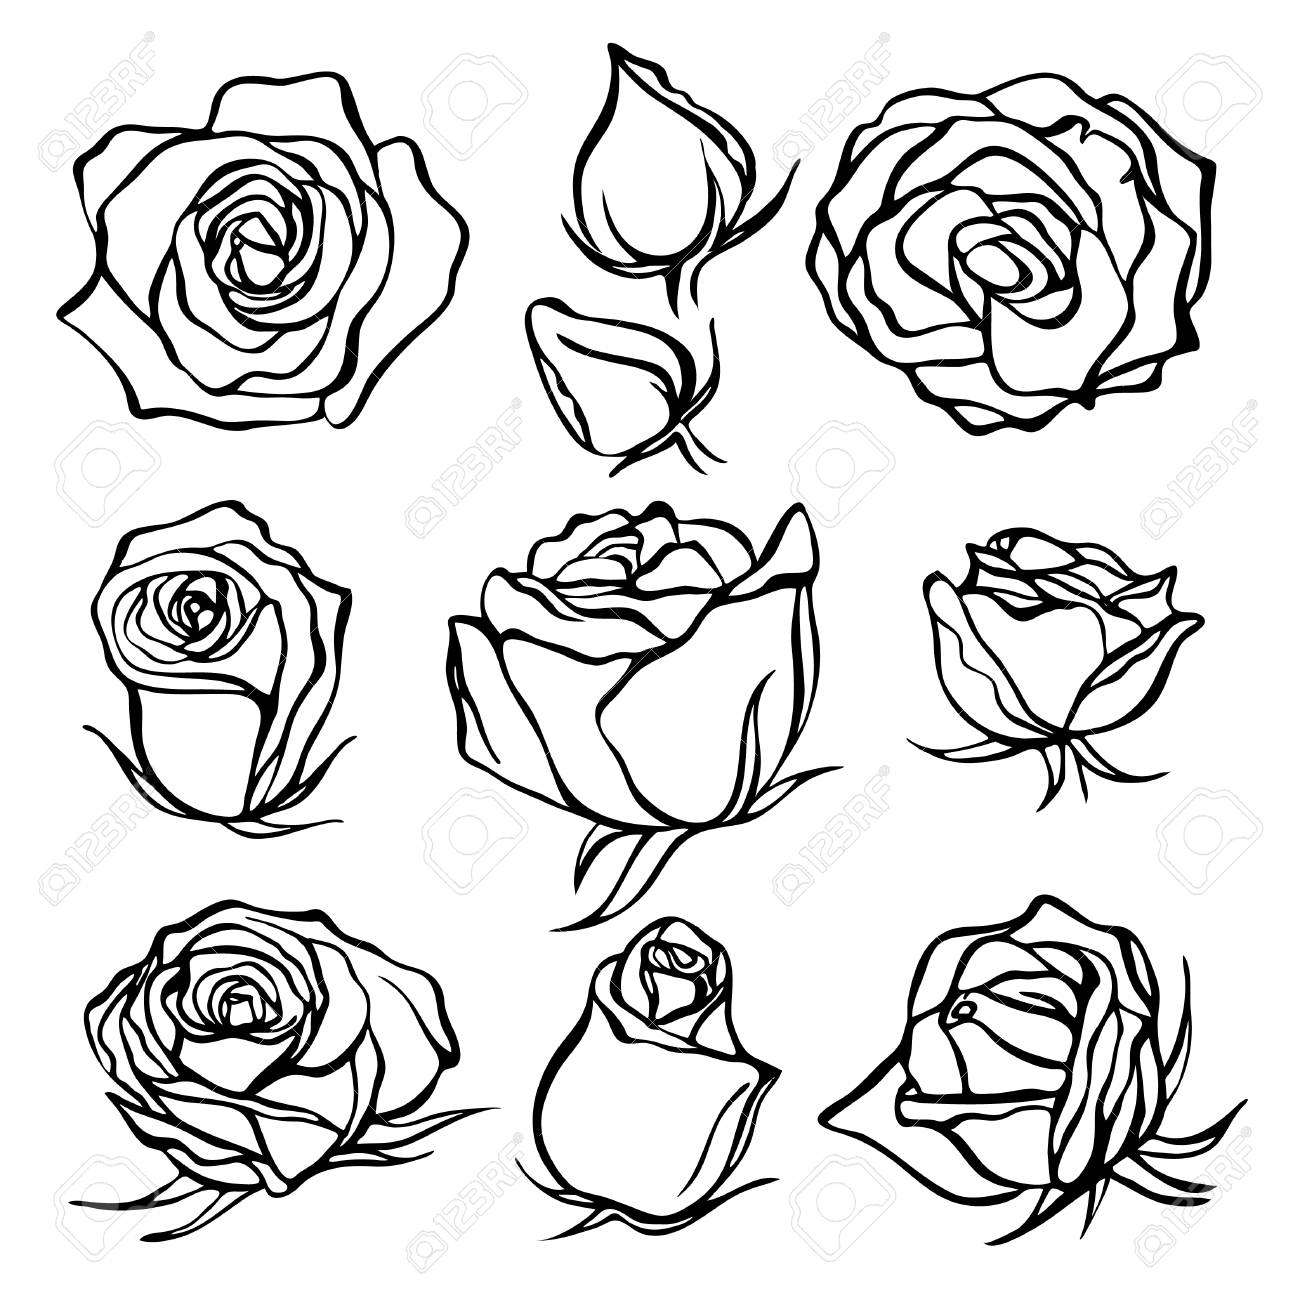 sketch rose flower set pencil sketch flowers with leaves on stem graphic emblems hand drawn contour